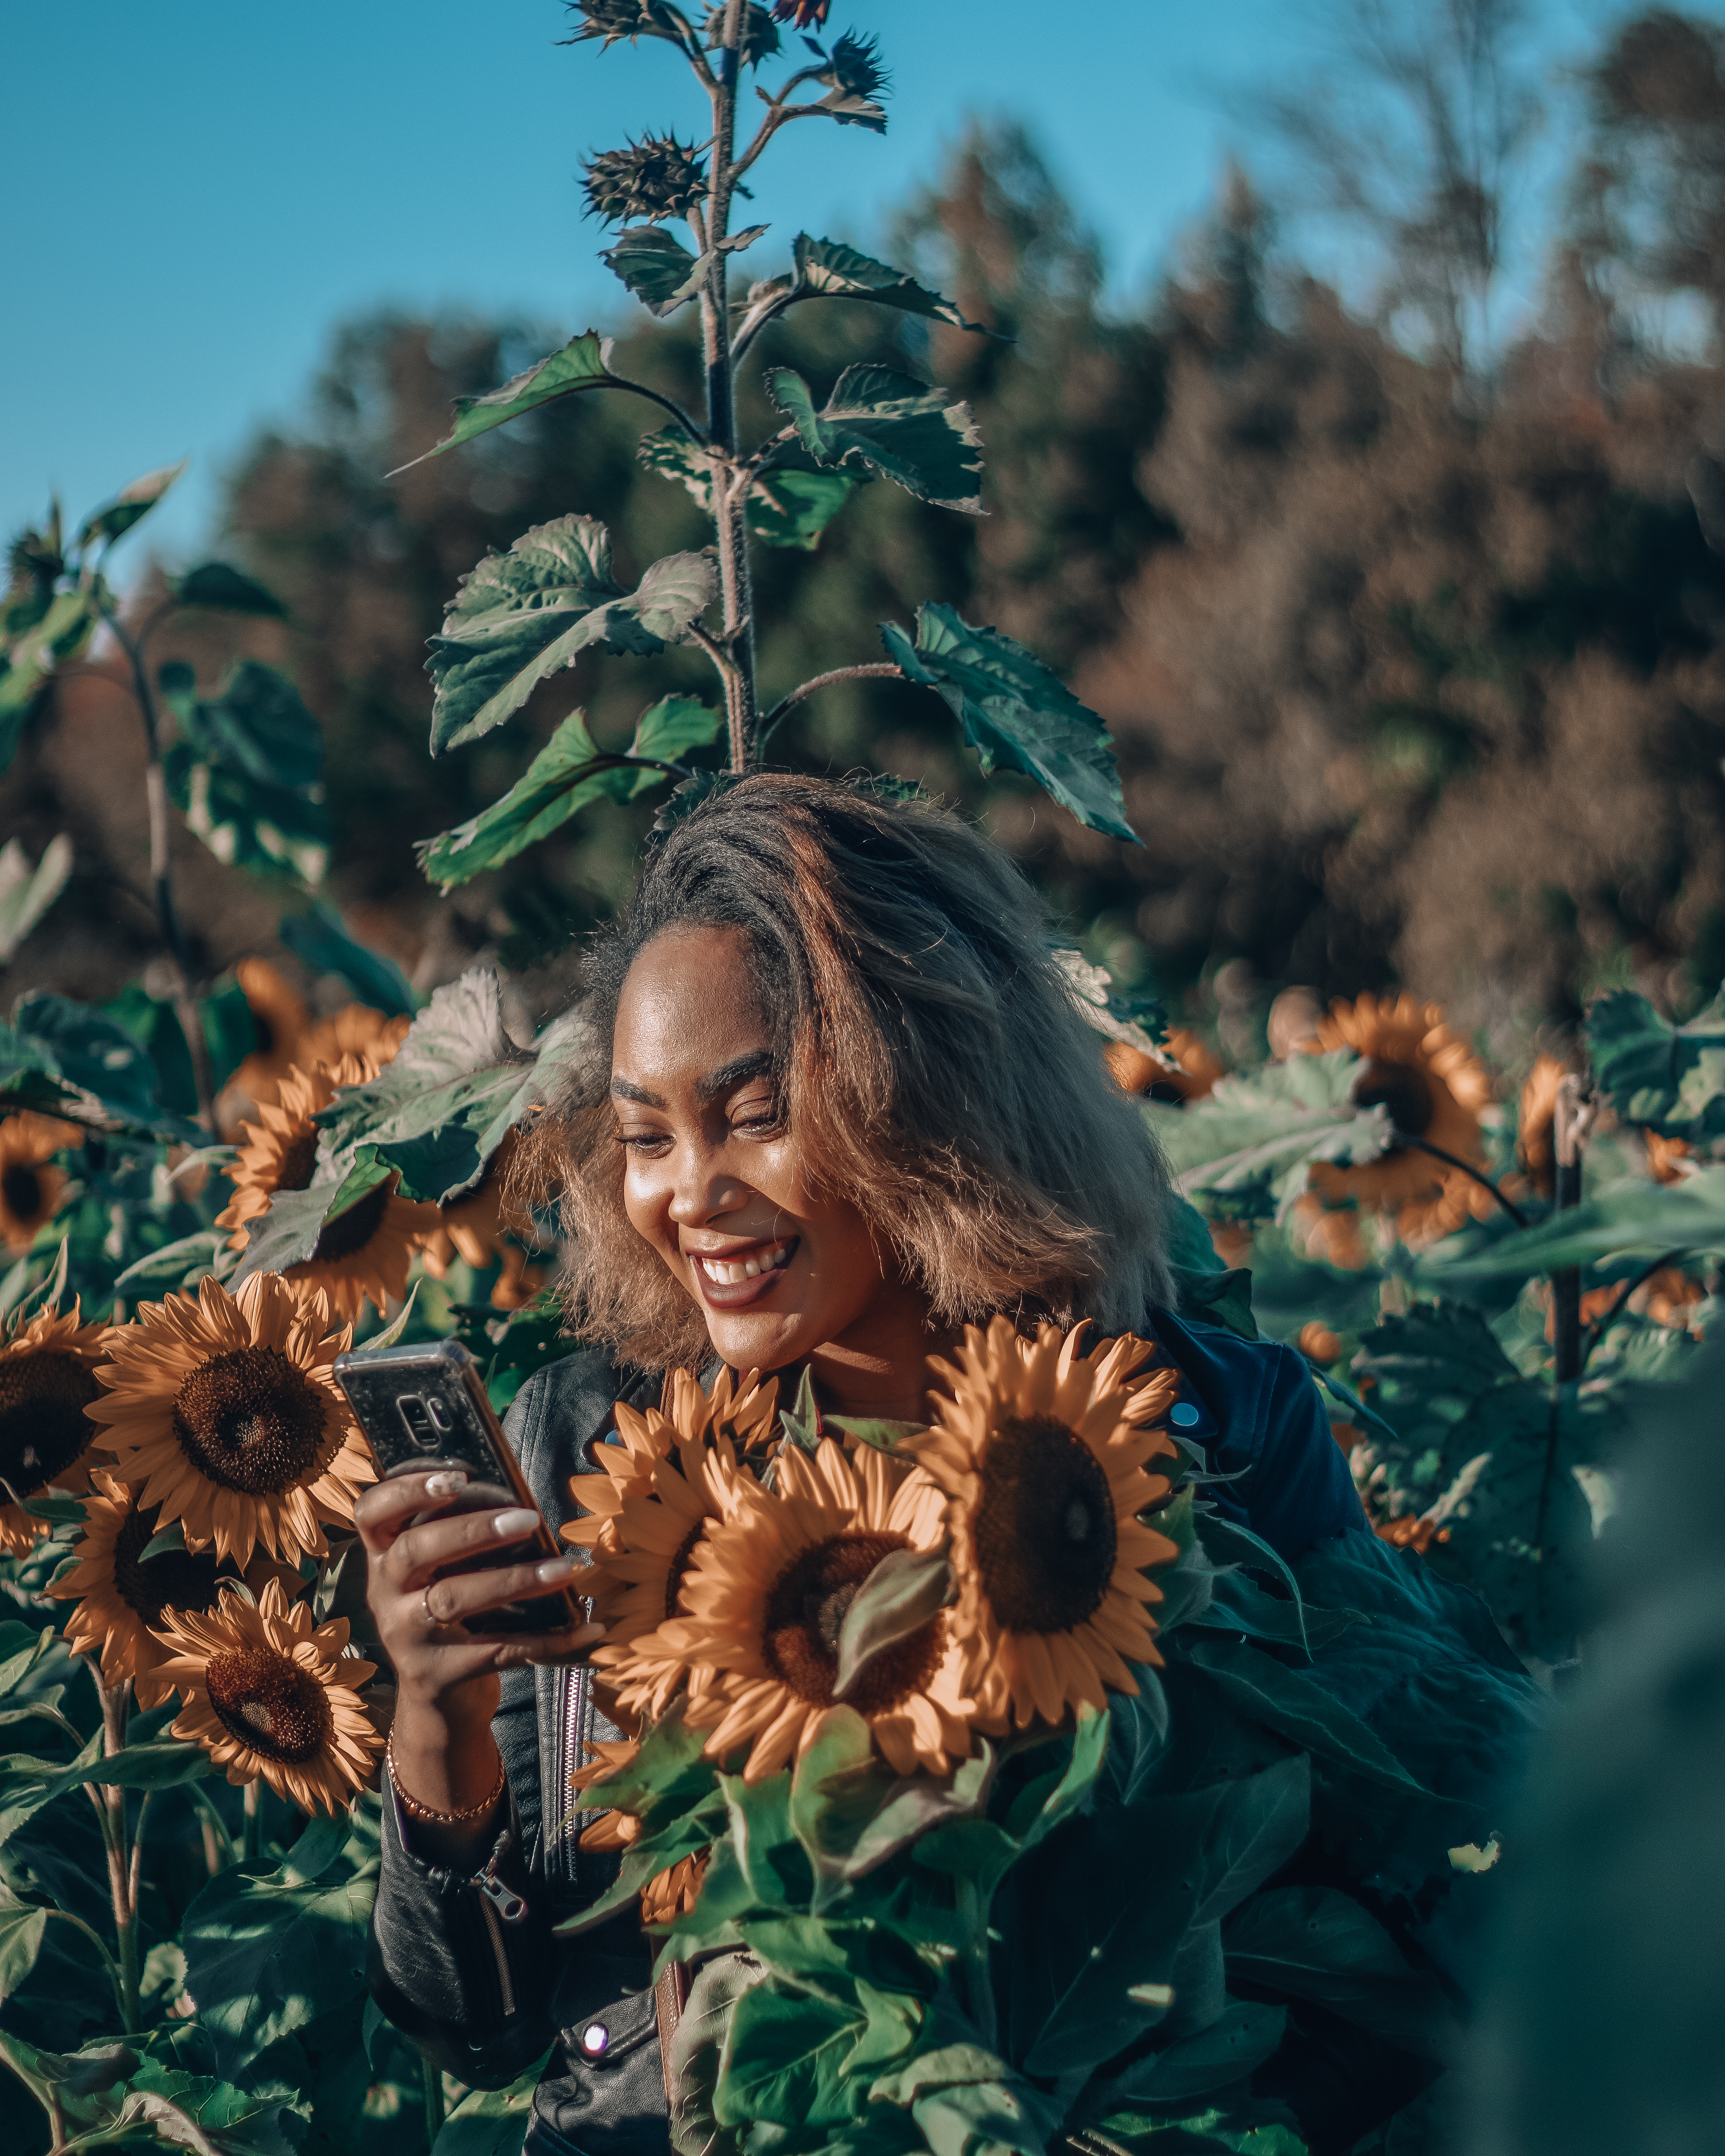 Girl smiling with sunflowers